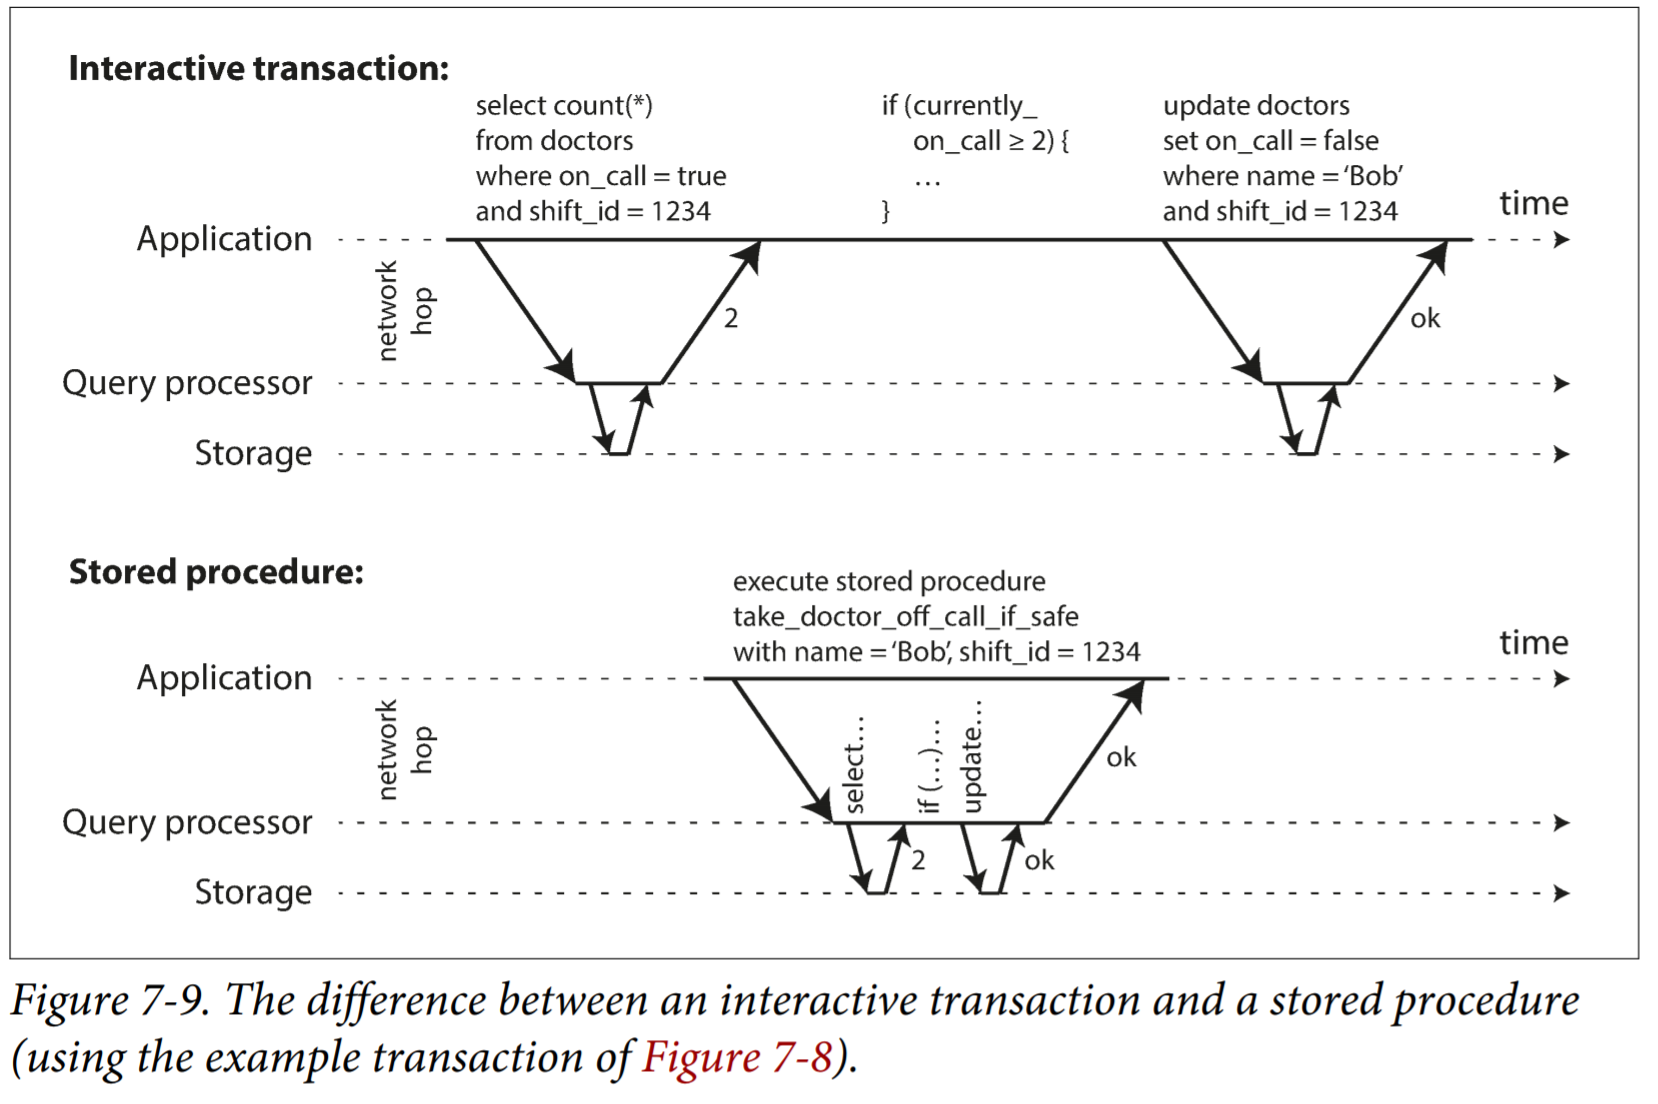 difference_between_interactive_transaction_and_store_procedure